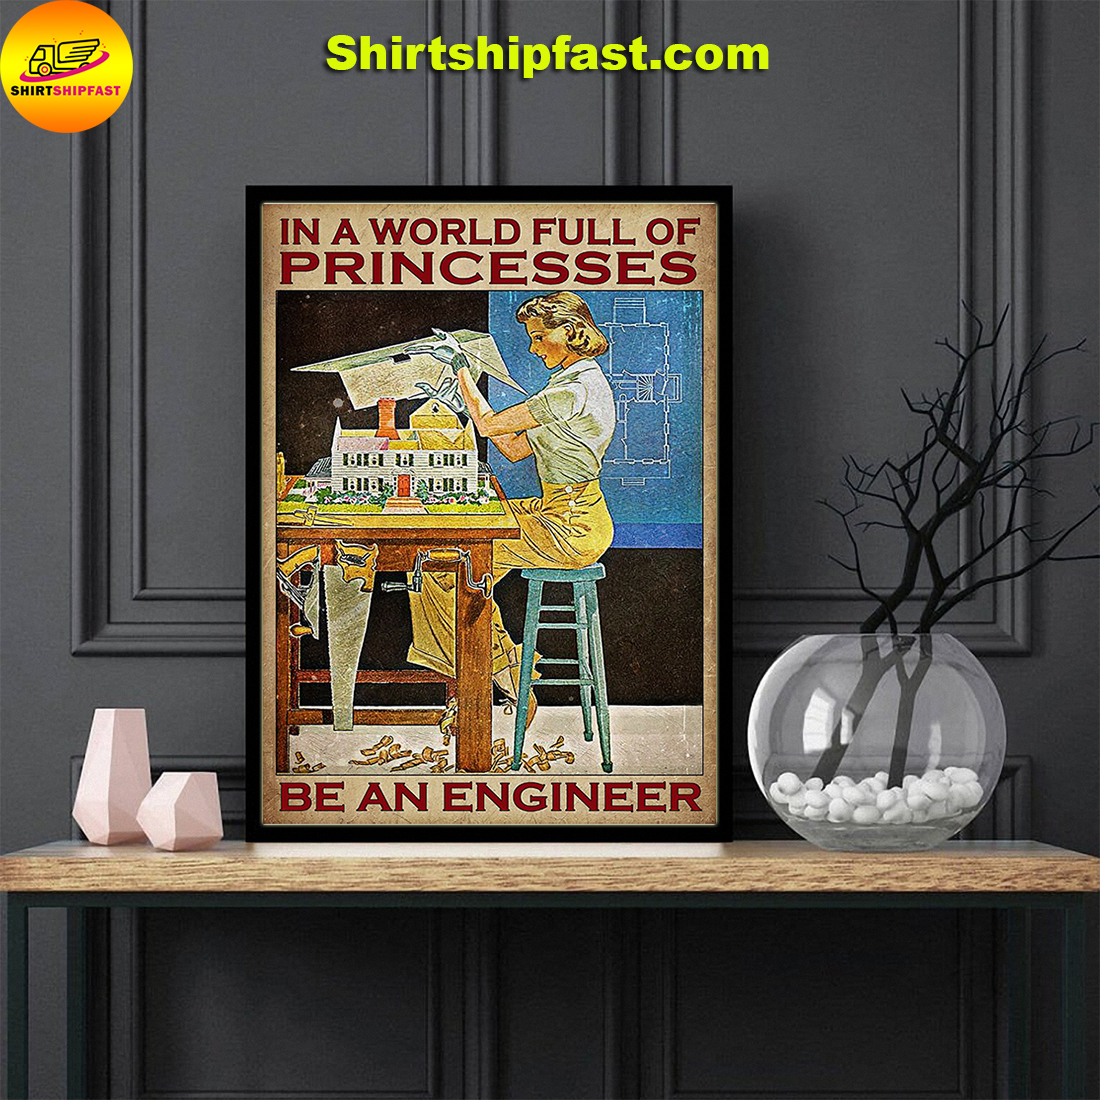 Girl In a world full of princesses be an engineer poster - Picture 2